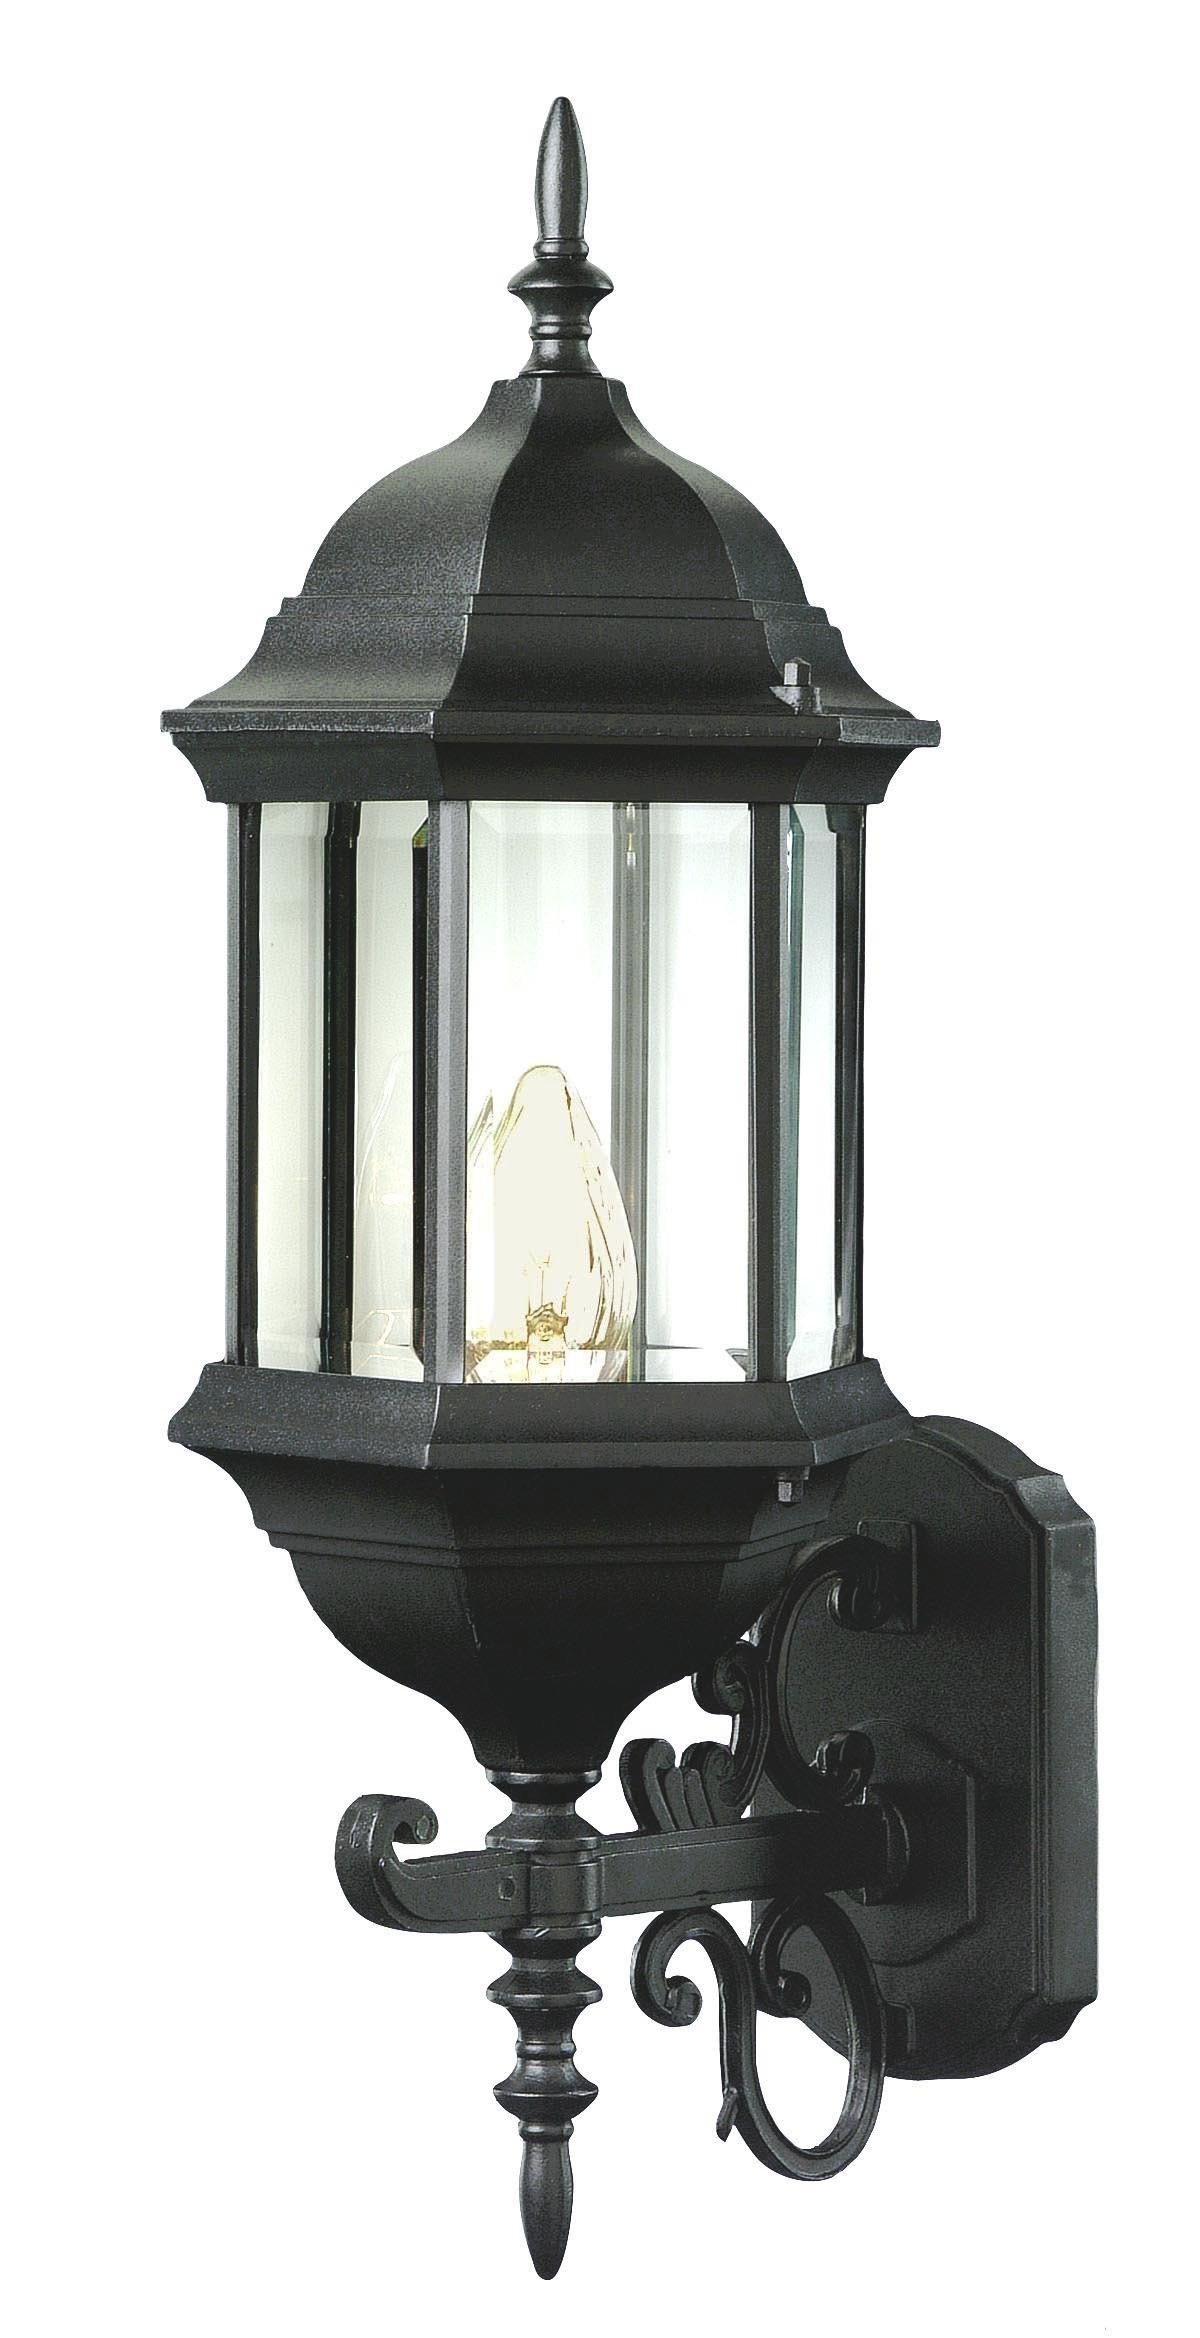 Trans Globe Lighting Trans Globe Imports 4351 BK Transitional One Light Wall Lantern from Josephine Collection in Black Finish, 9.00 inches, 26-Inch